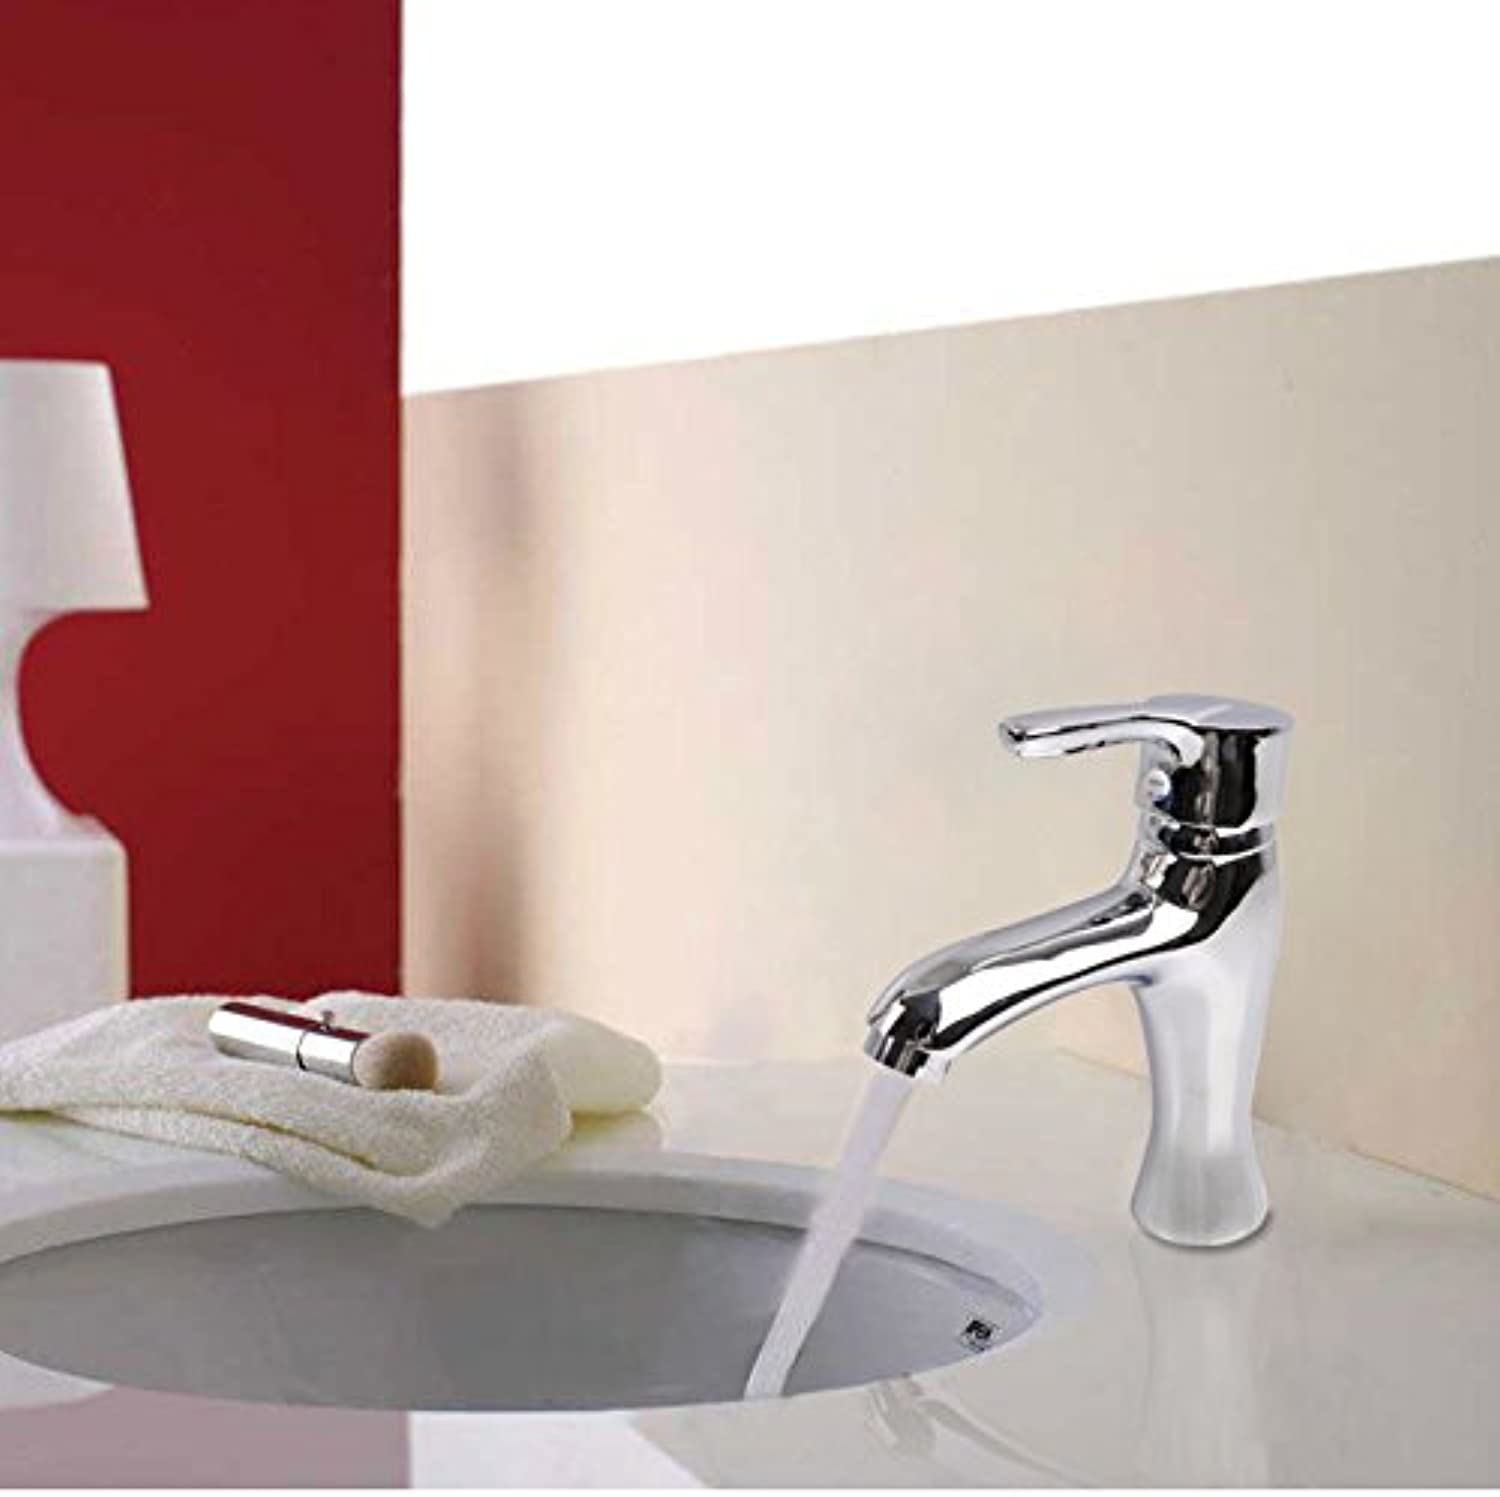 FORTR HOME Copper single handle double hole faucet hot and cold basin faucet ceramic valve core